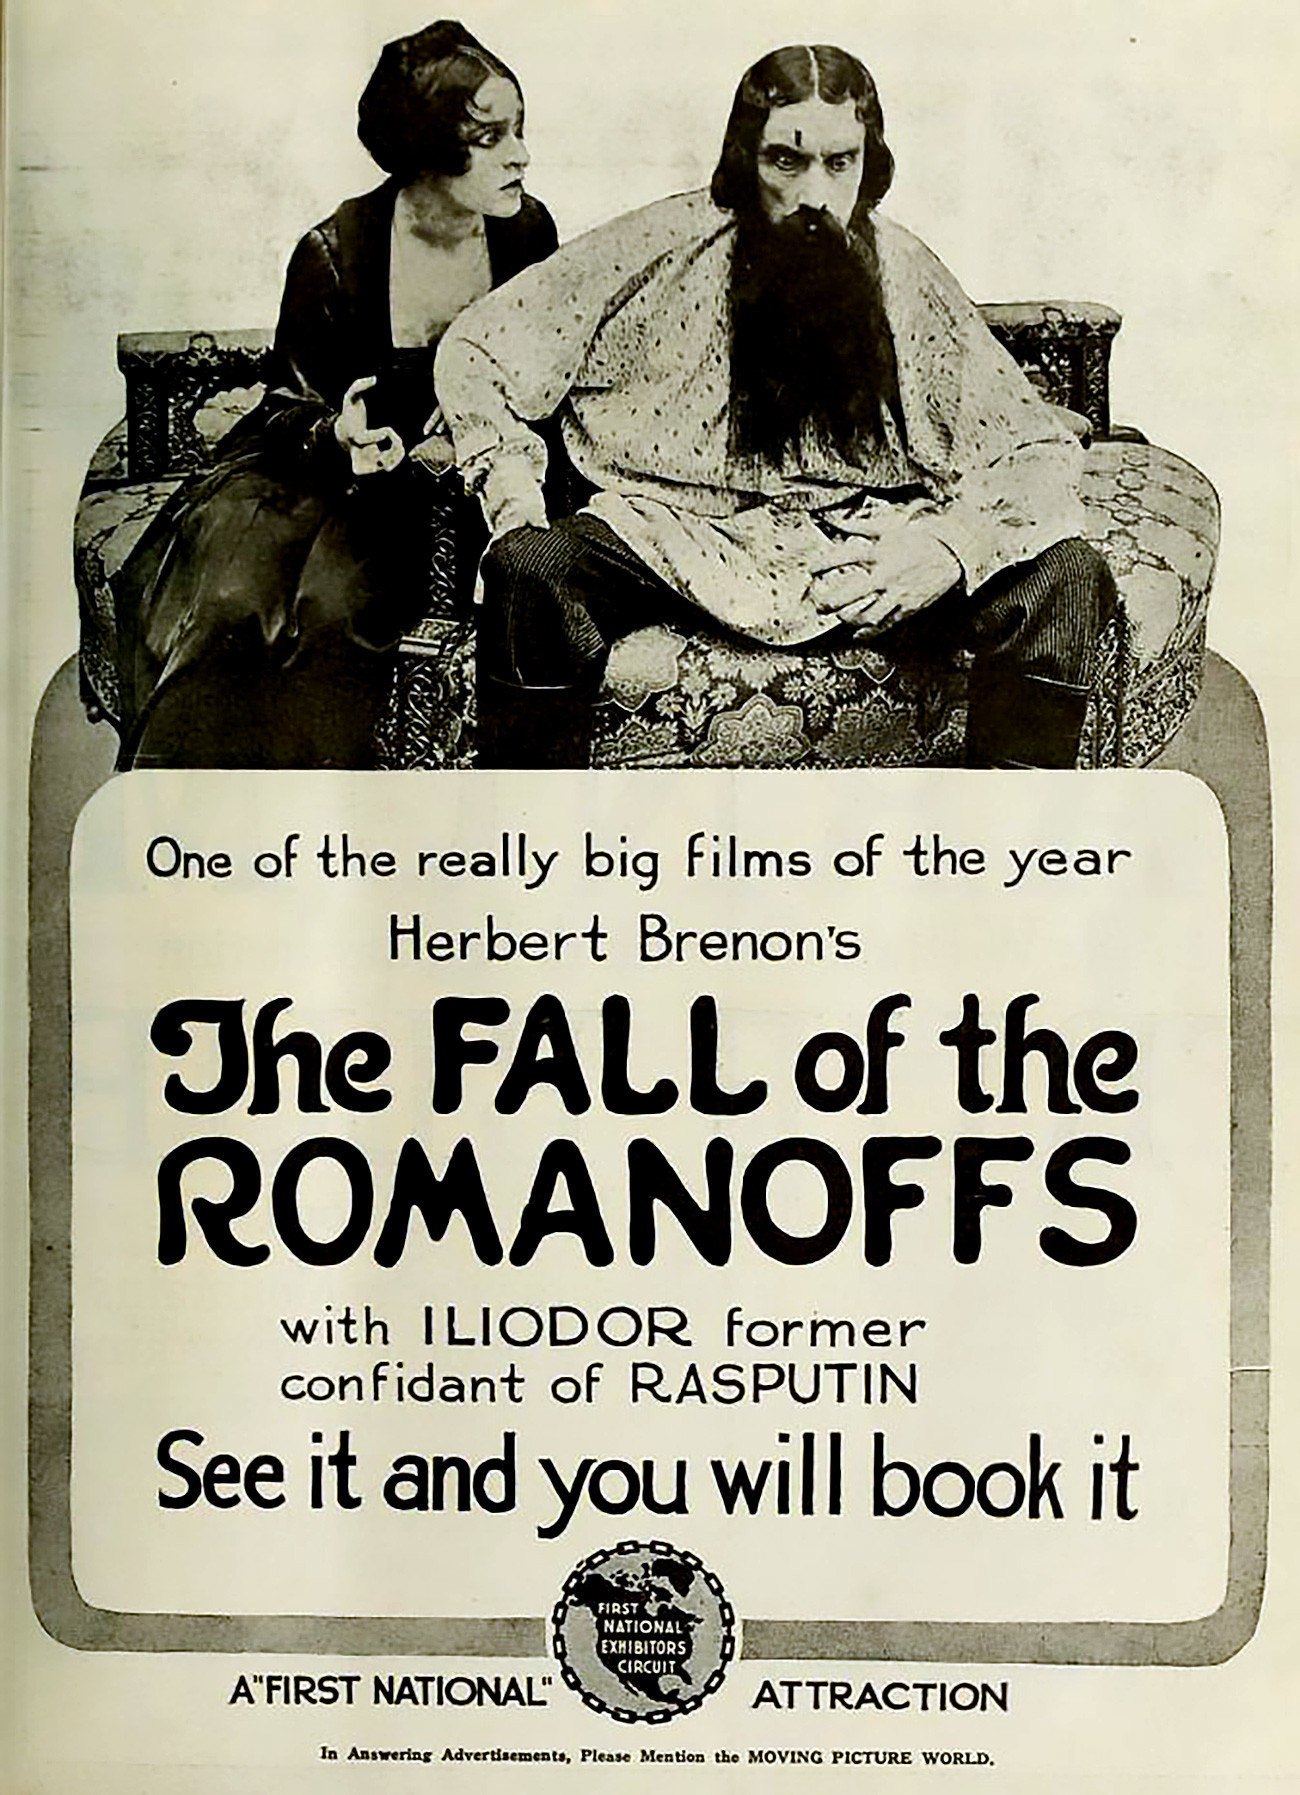 Iklan di Moving Picture World, Mei 1918 untuk film The Fall of the Romanoffs (1917) dengan Edward Connelly dan Ketty Galanta.